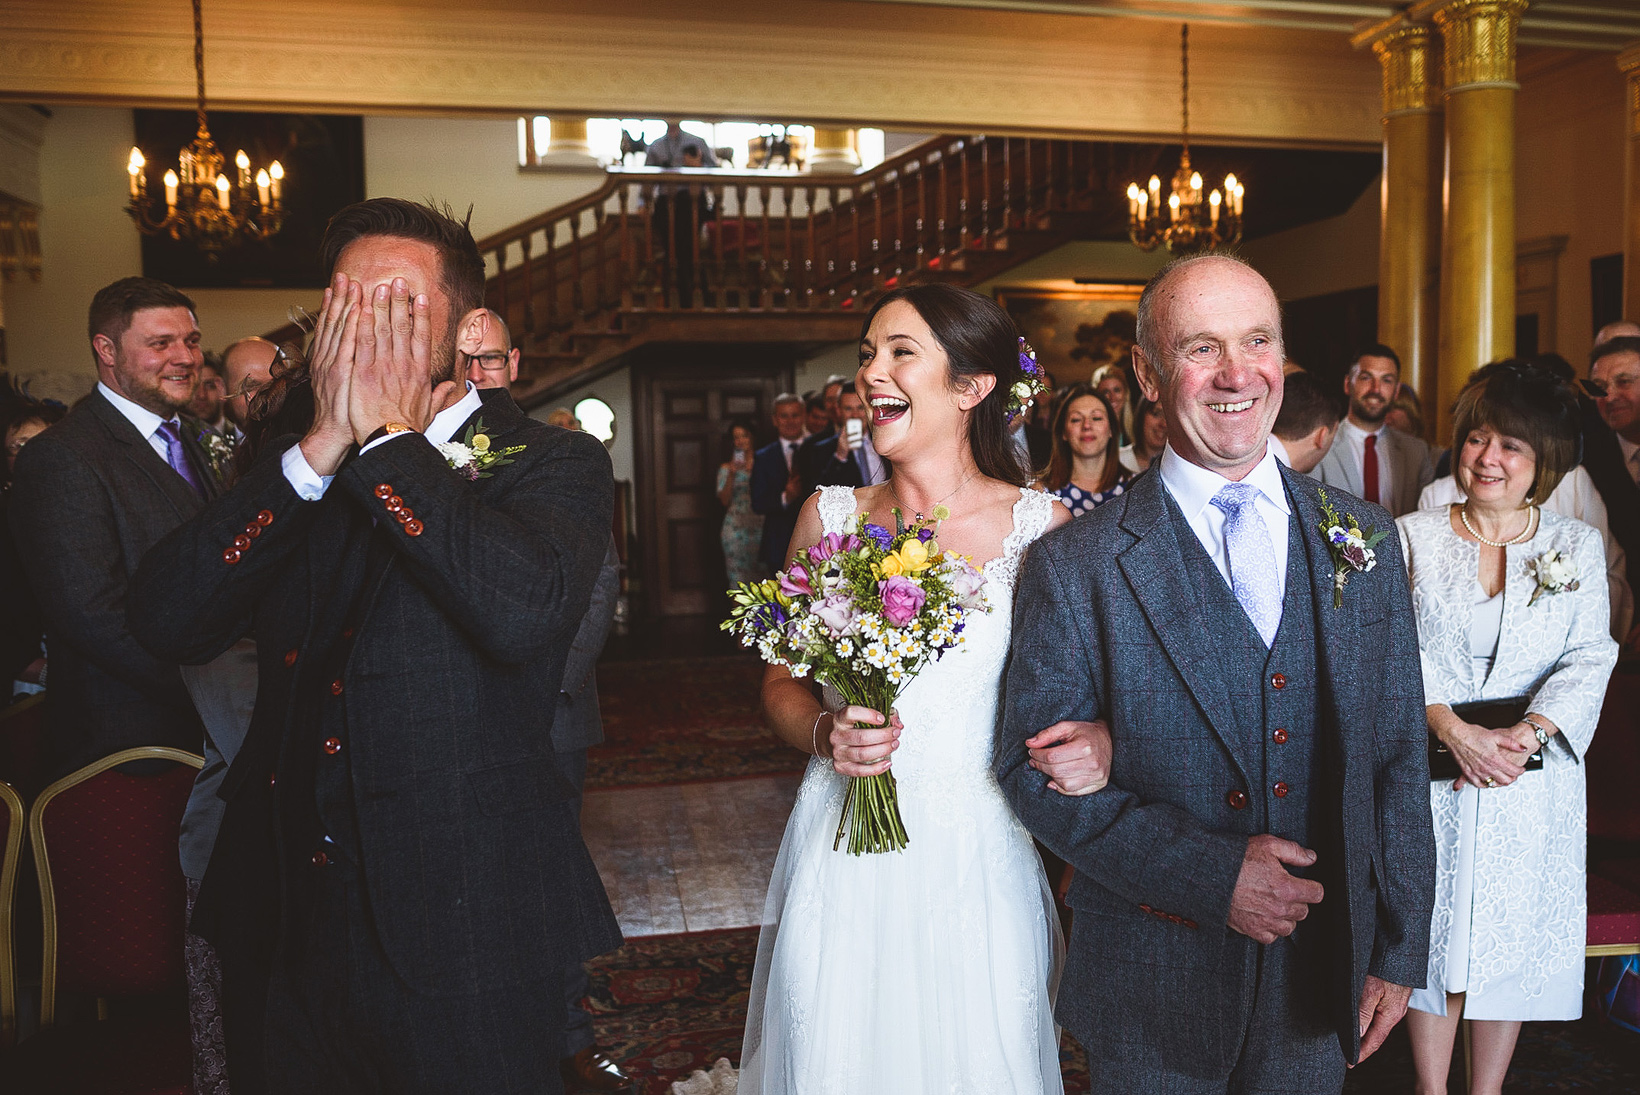 Walcot Hall Weddings